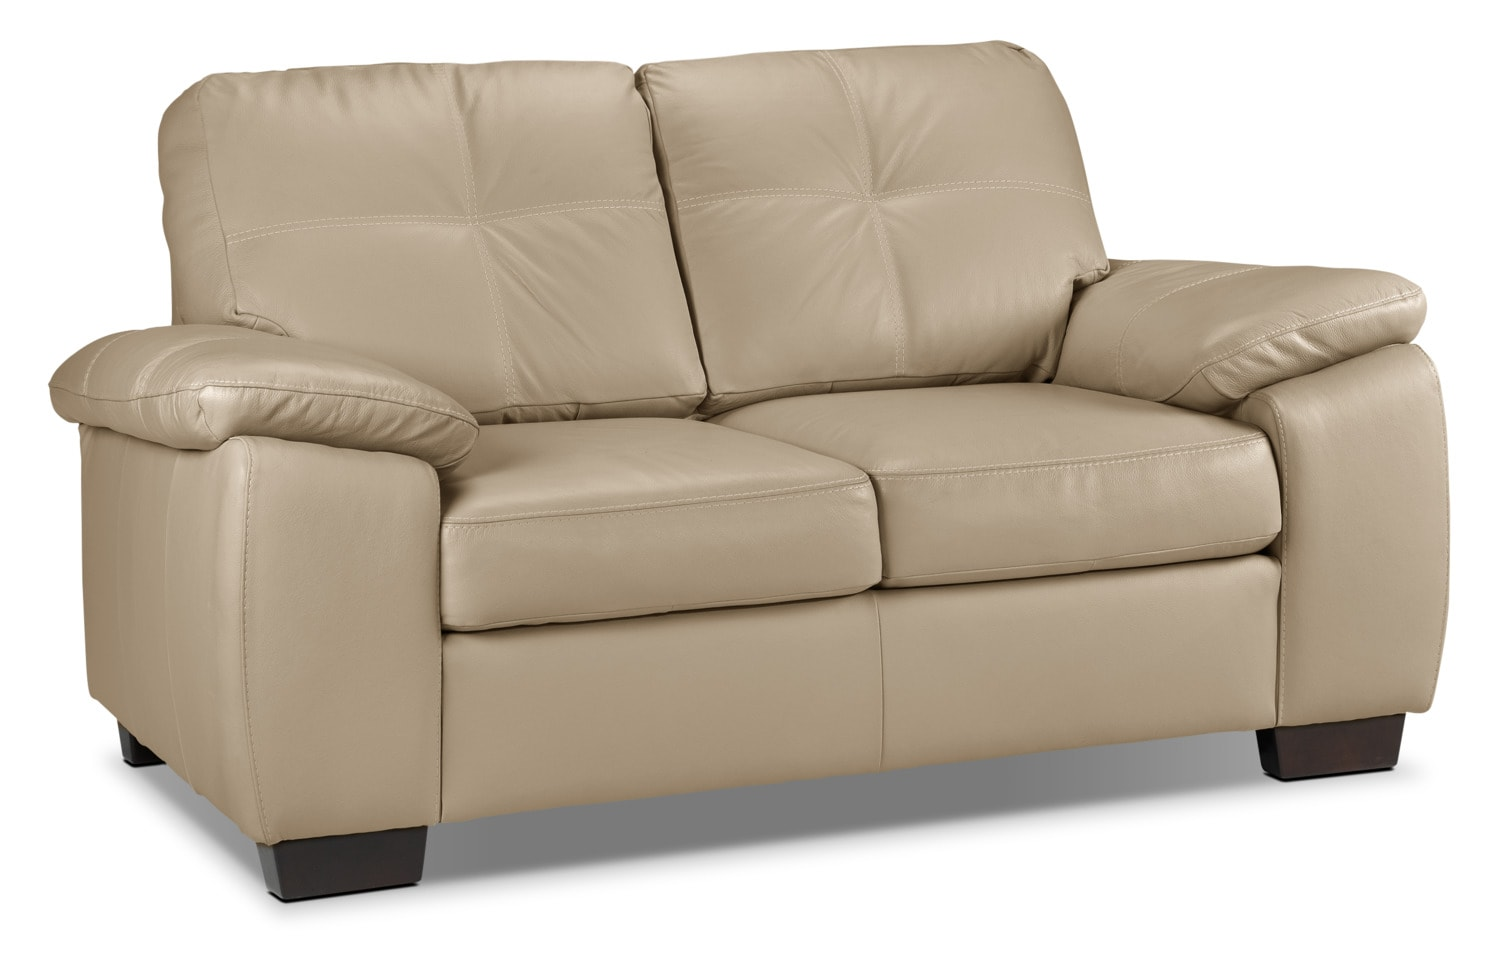 Naples Loveseat - Warm Beige